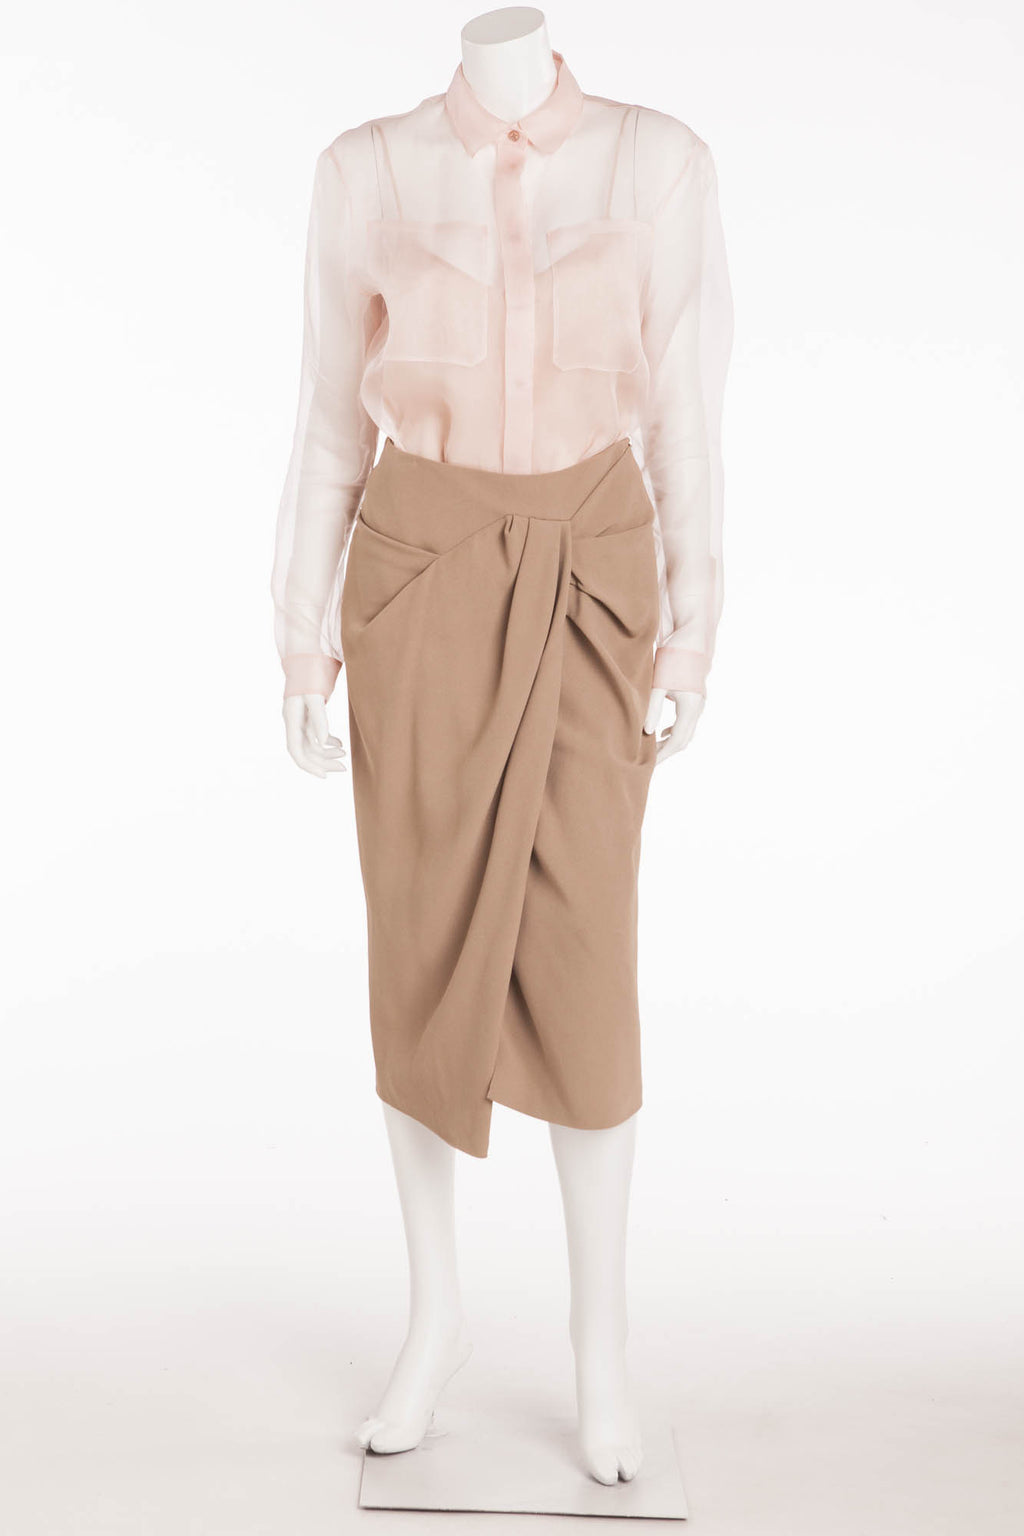 Burberry Prorsum - Brand New 2PC Sheer Pink Shirt Tank Top Nude Skirt - IT 42